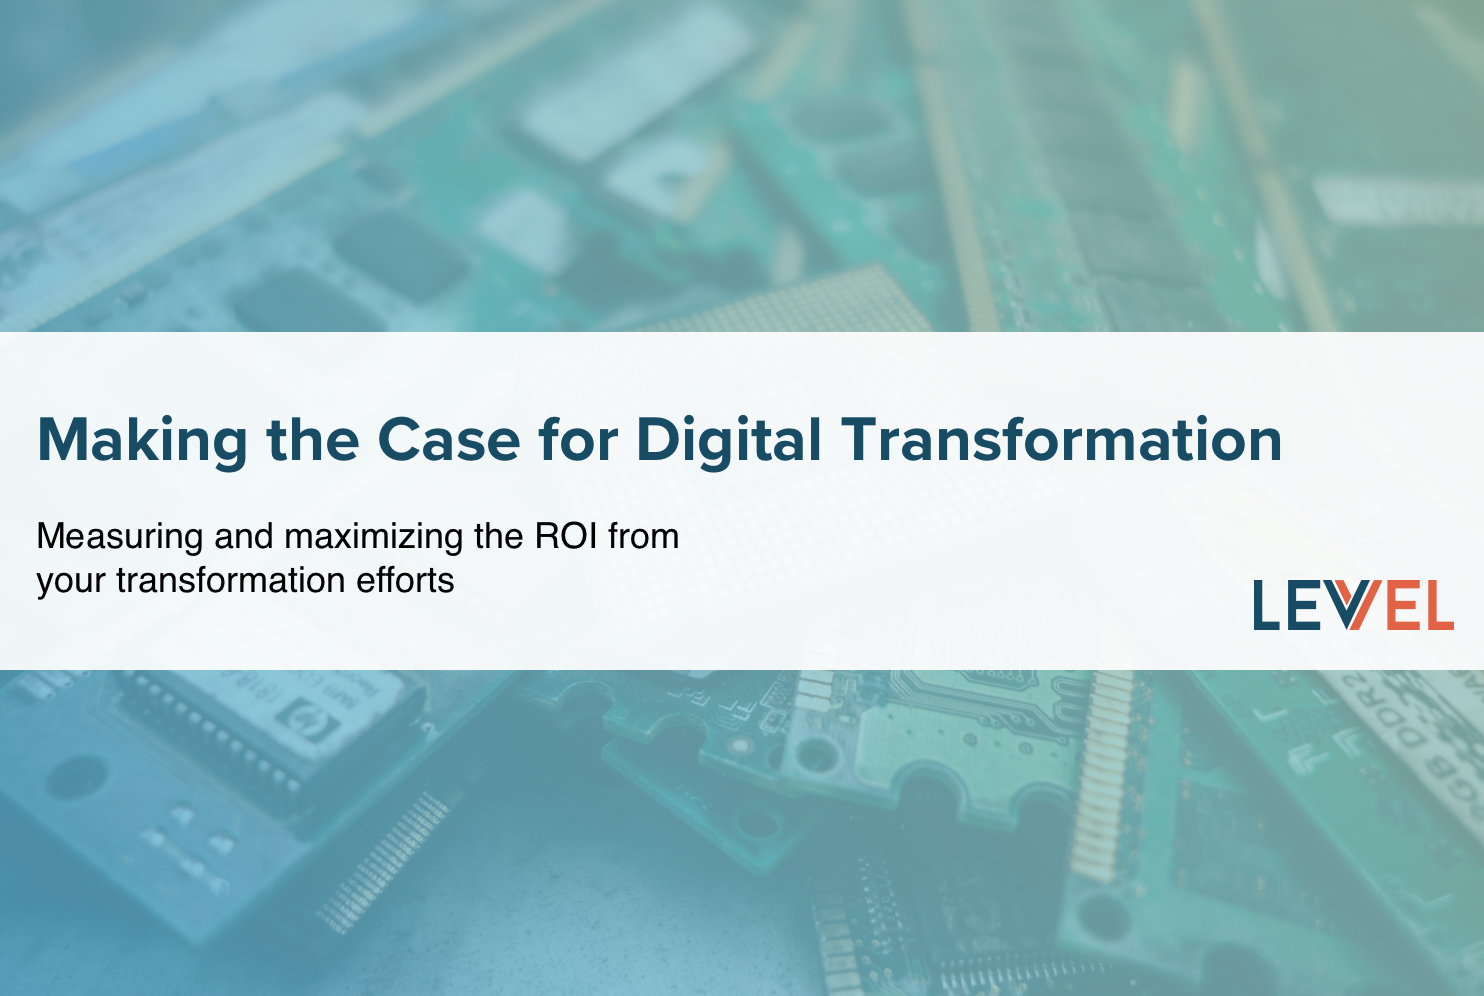 Making the Case for Digital Transformation